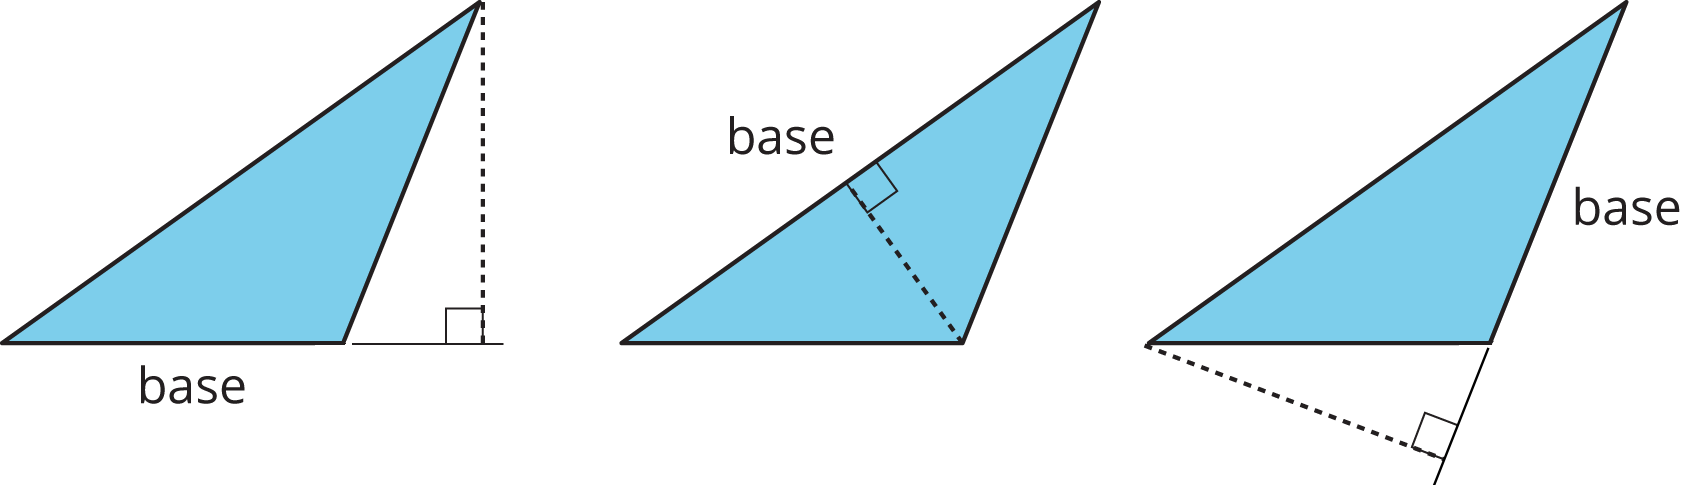 """Three images of a triangle, each with a different side labeled """"base"""" and an accompanying dashed line perpendicular to the base indicating the height."""